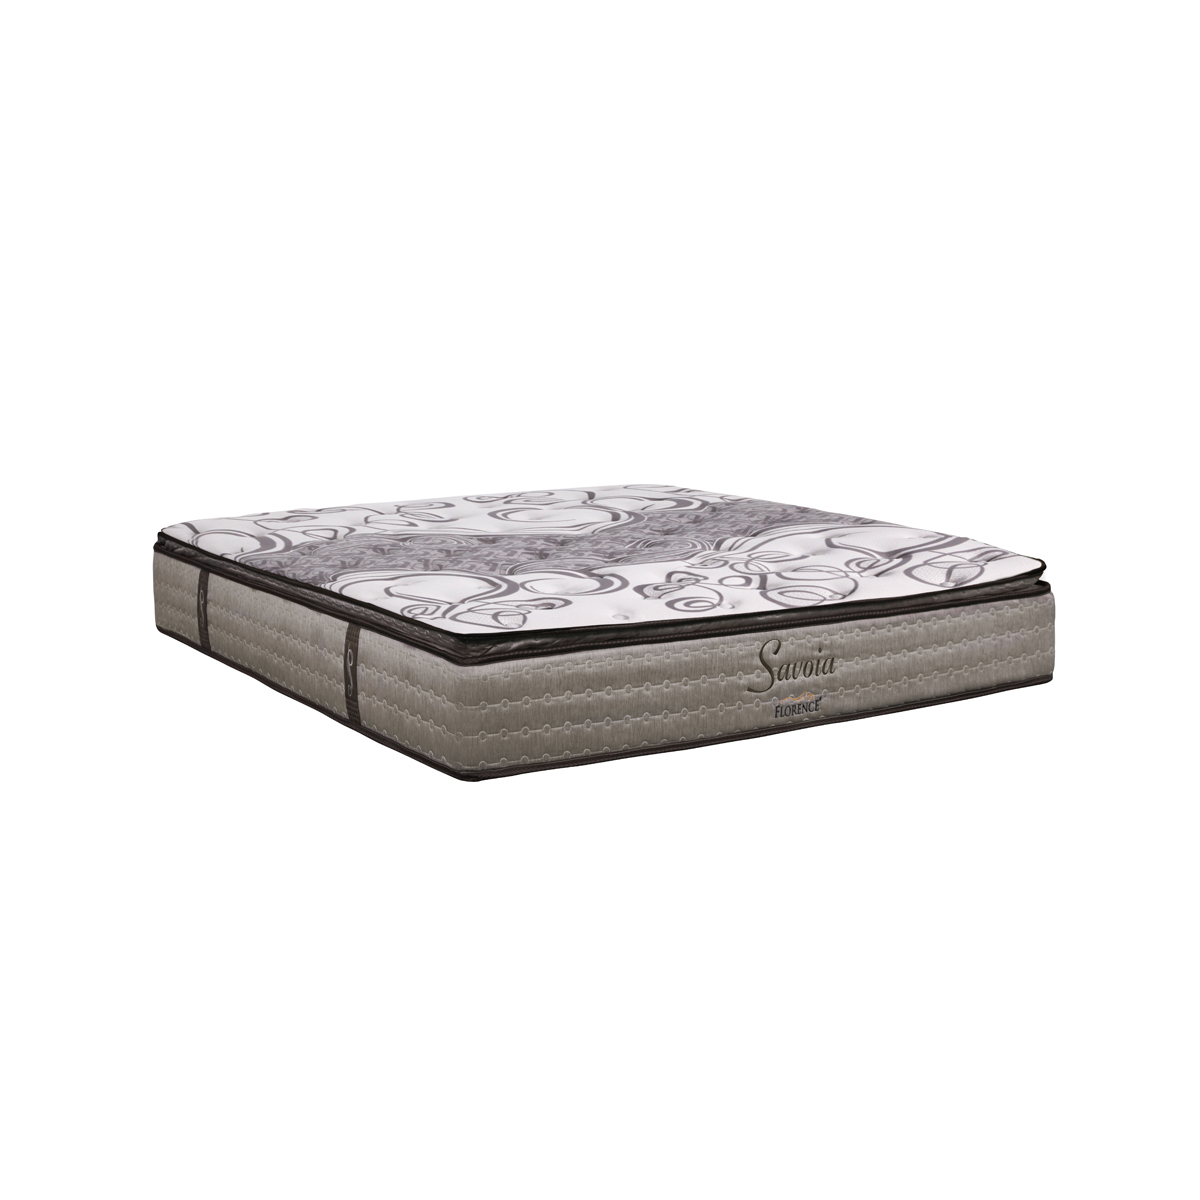 Bed matras  hu vu g pocket sprung mattress medium firm